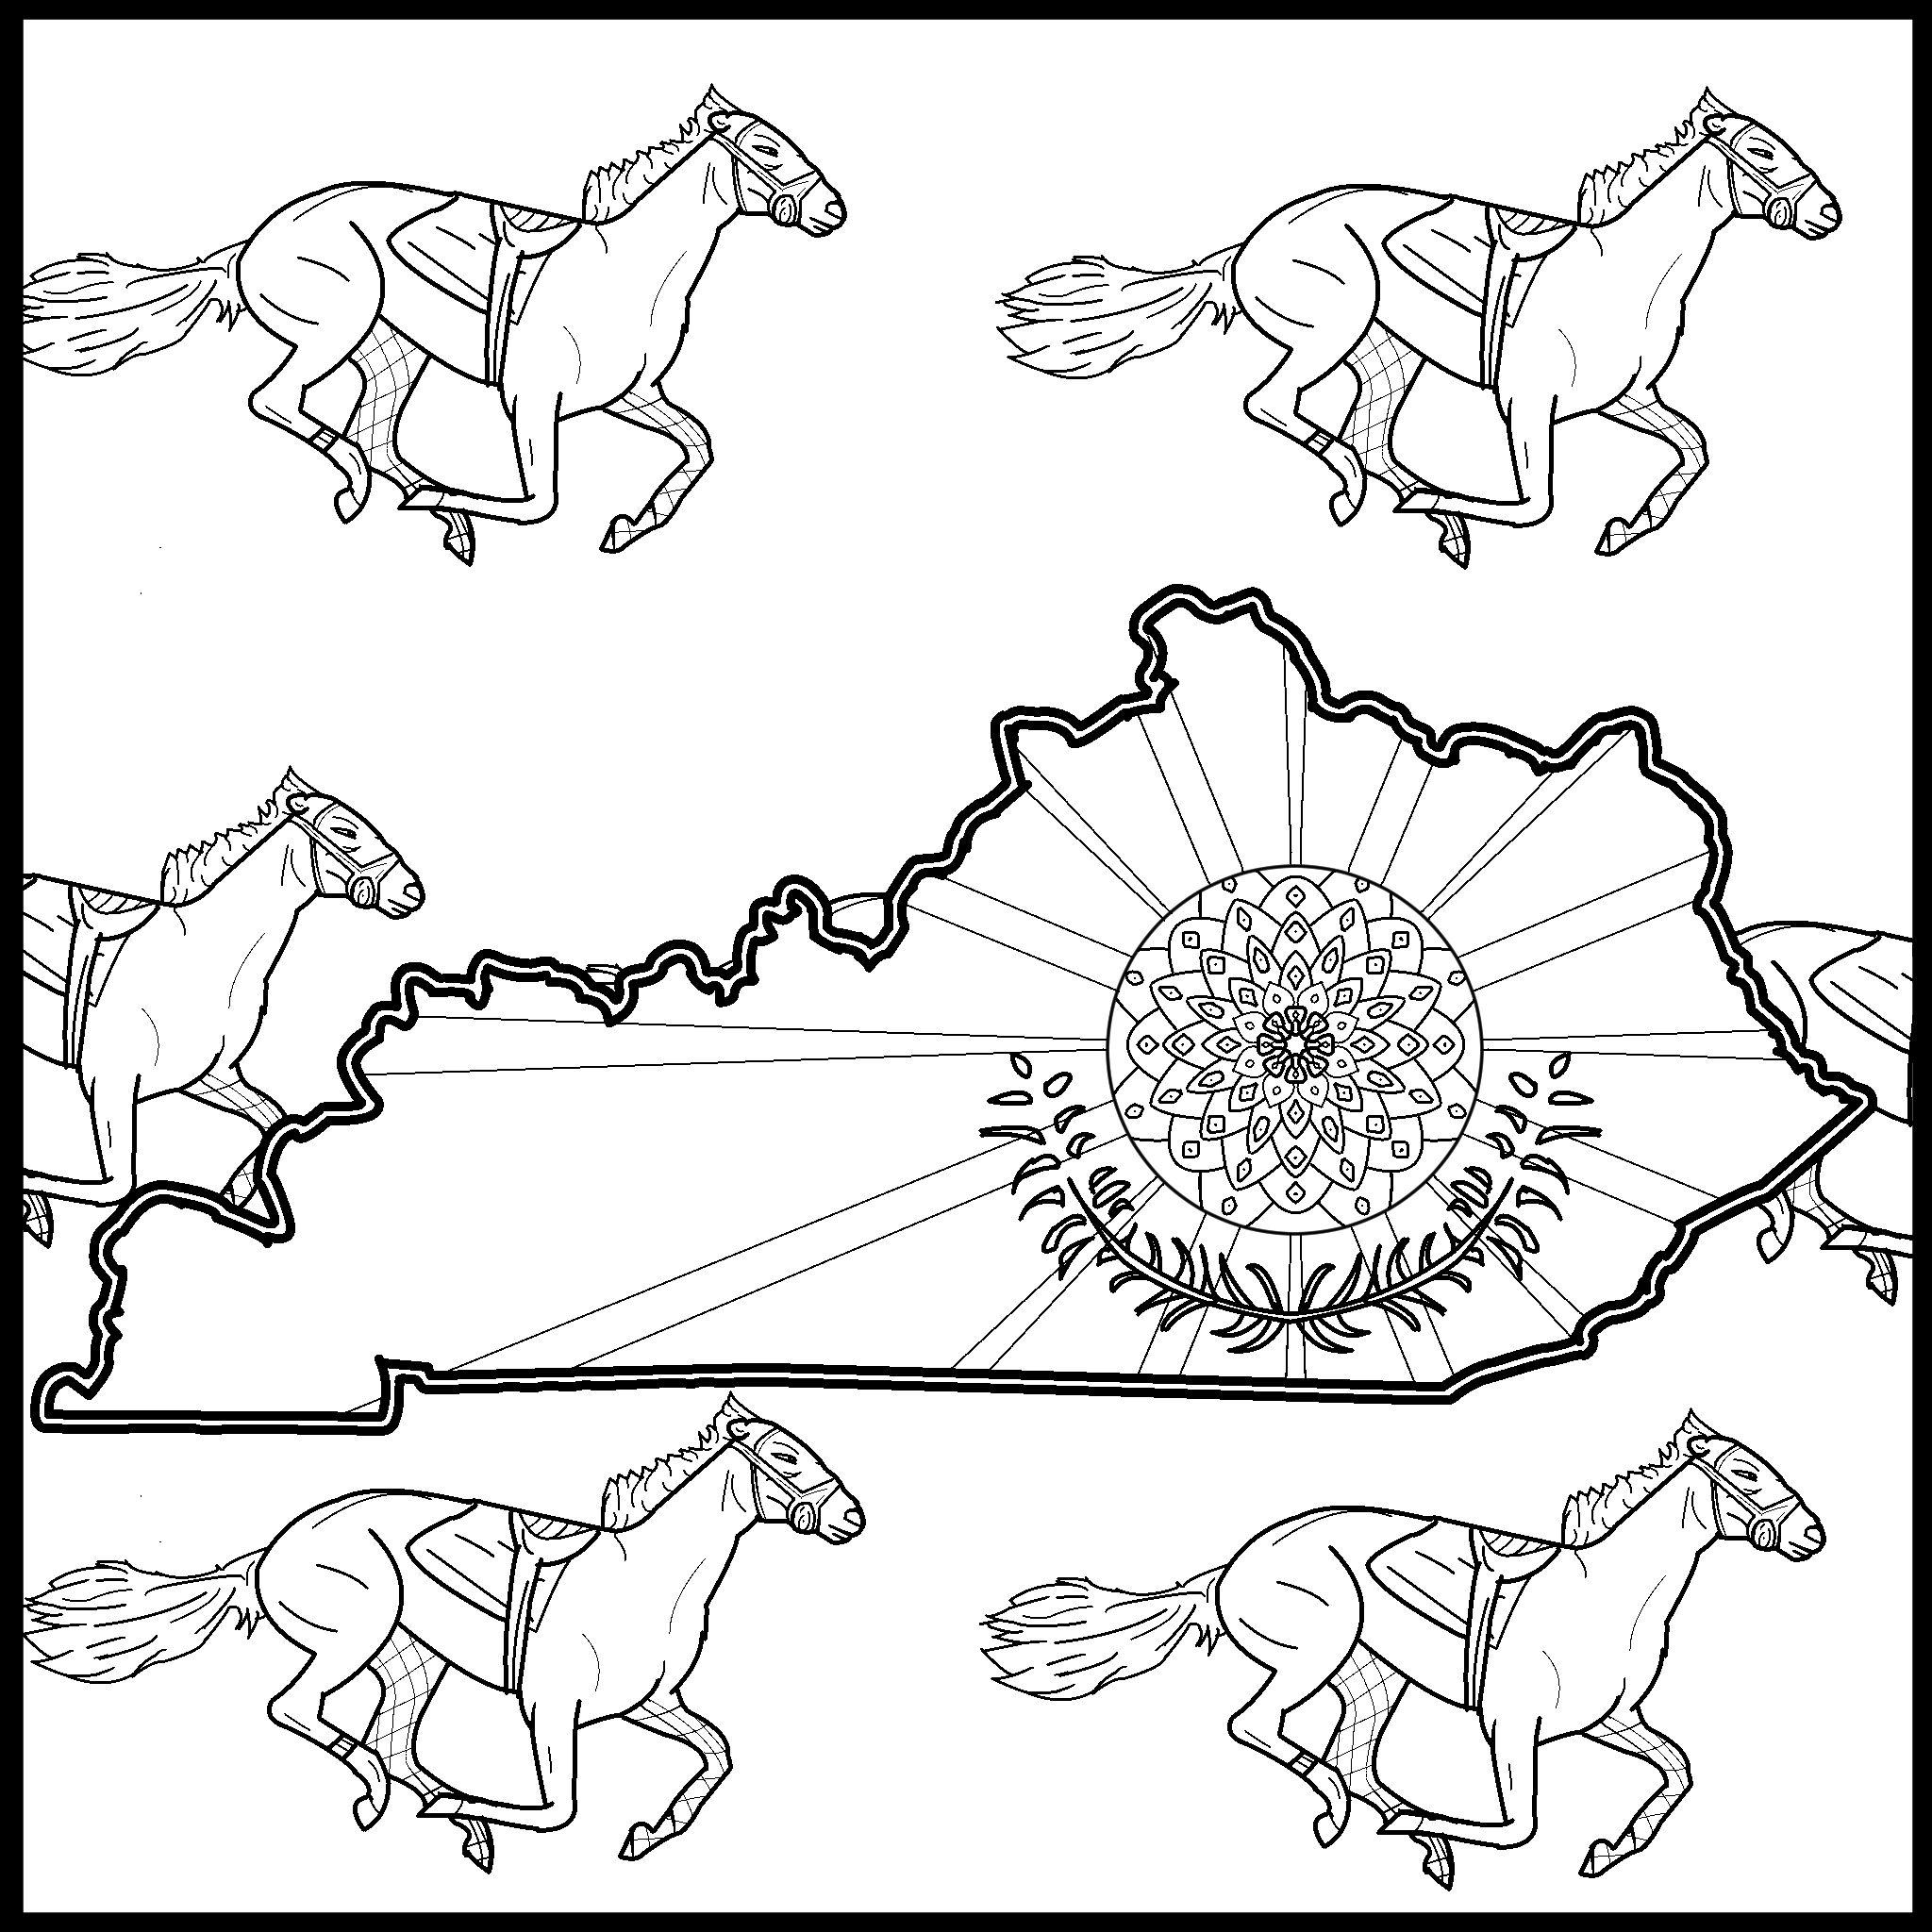 Kentucky Coloring Pages Monster Coloring Pages Kindergarten Coloring Pages Coloring Pages